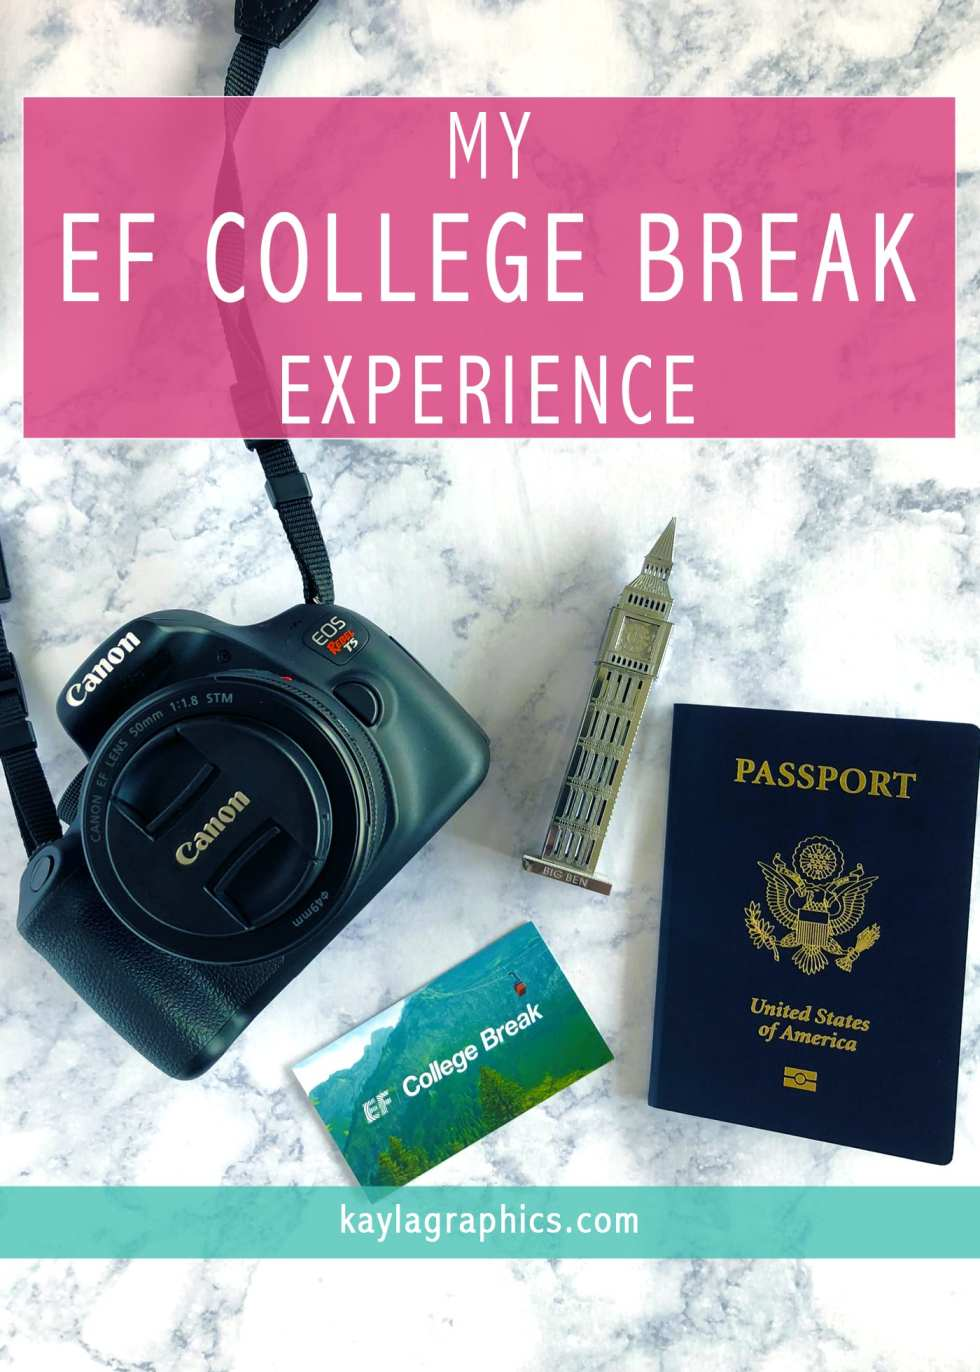 MY EF COLLEGE BREAK EXPERIENCE